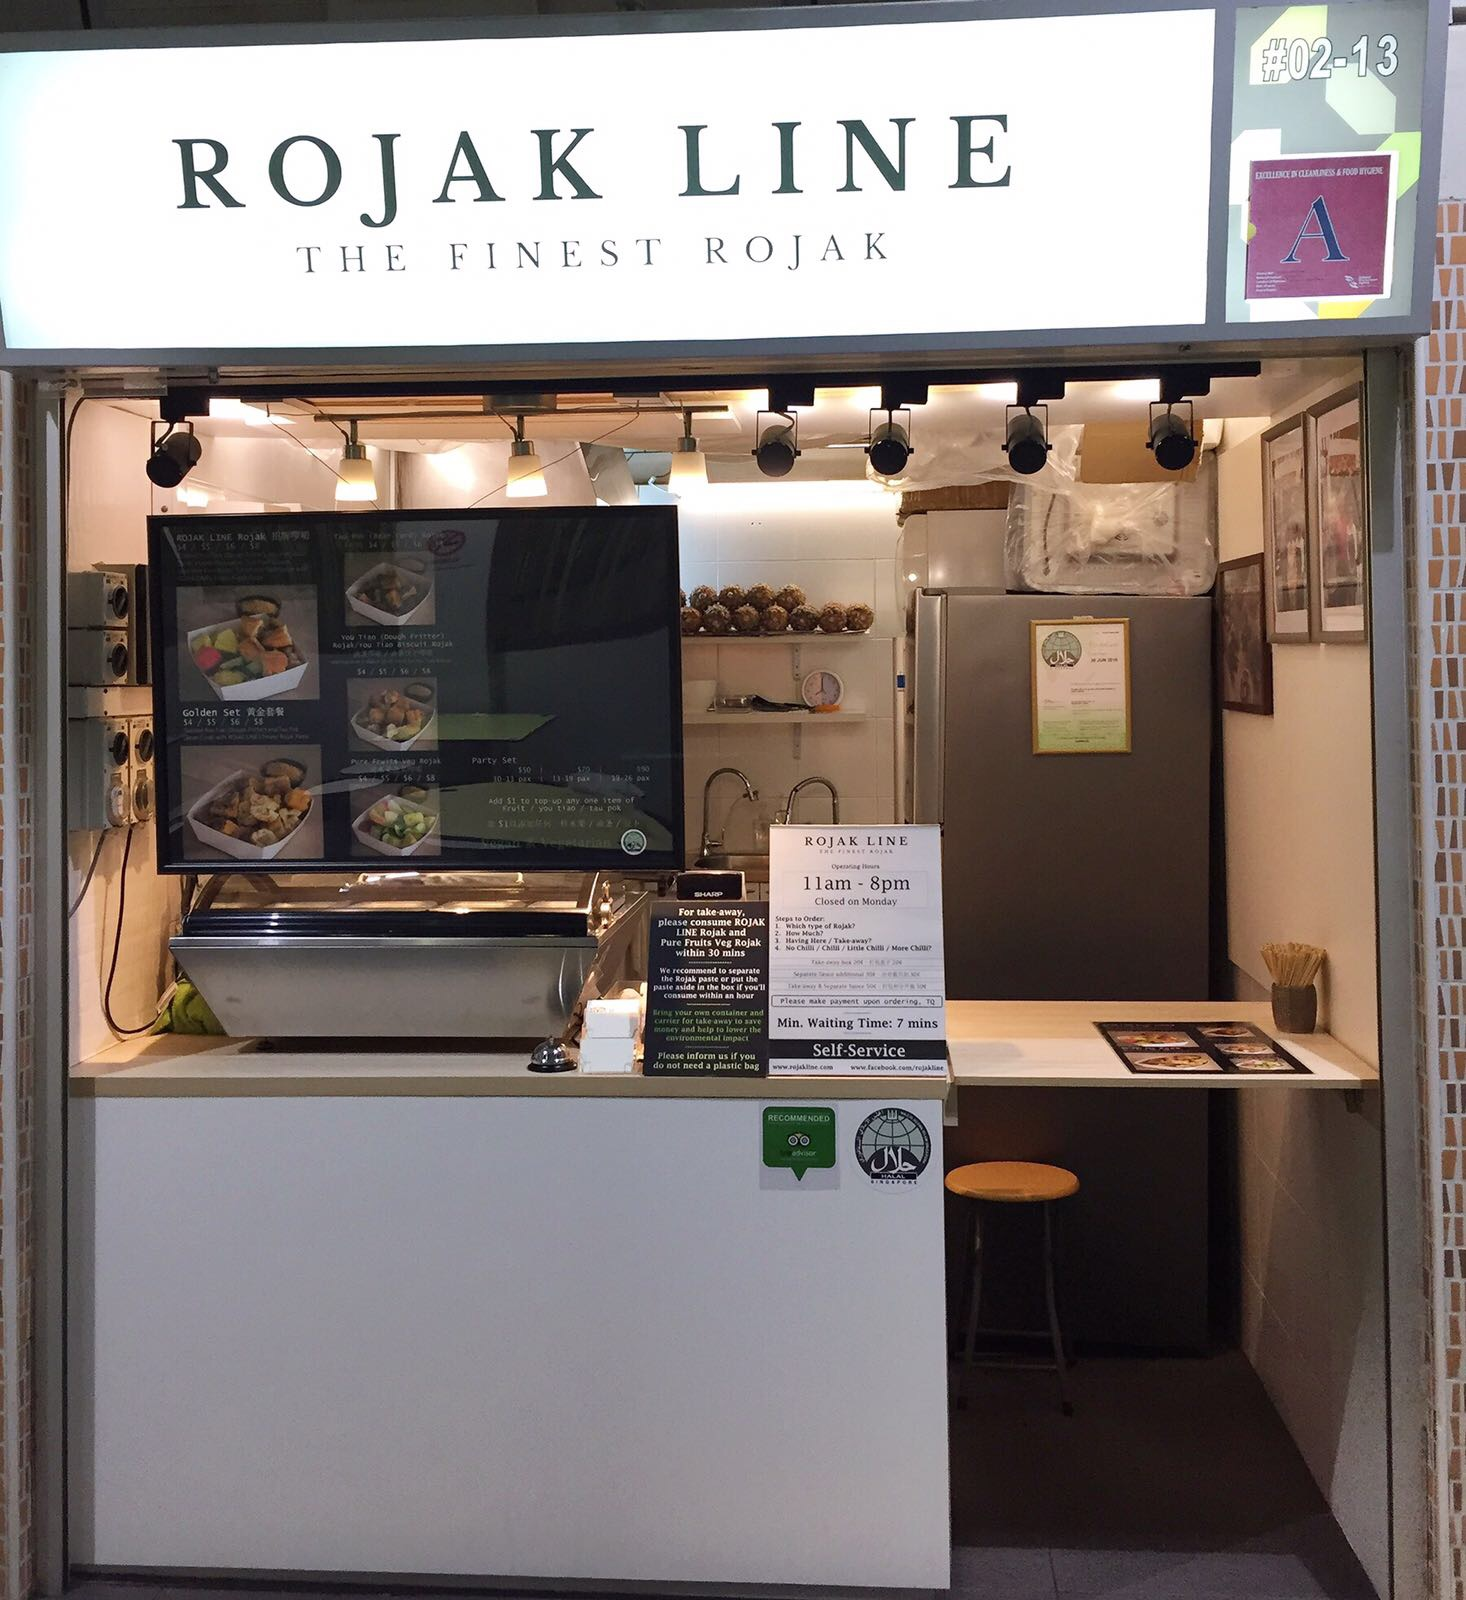 ROJAK LINE, Best Rojak in Singapore, Vegan Rojak, Vegetarian Rojak